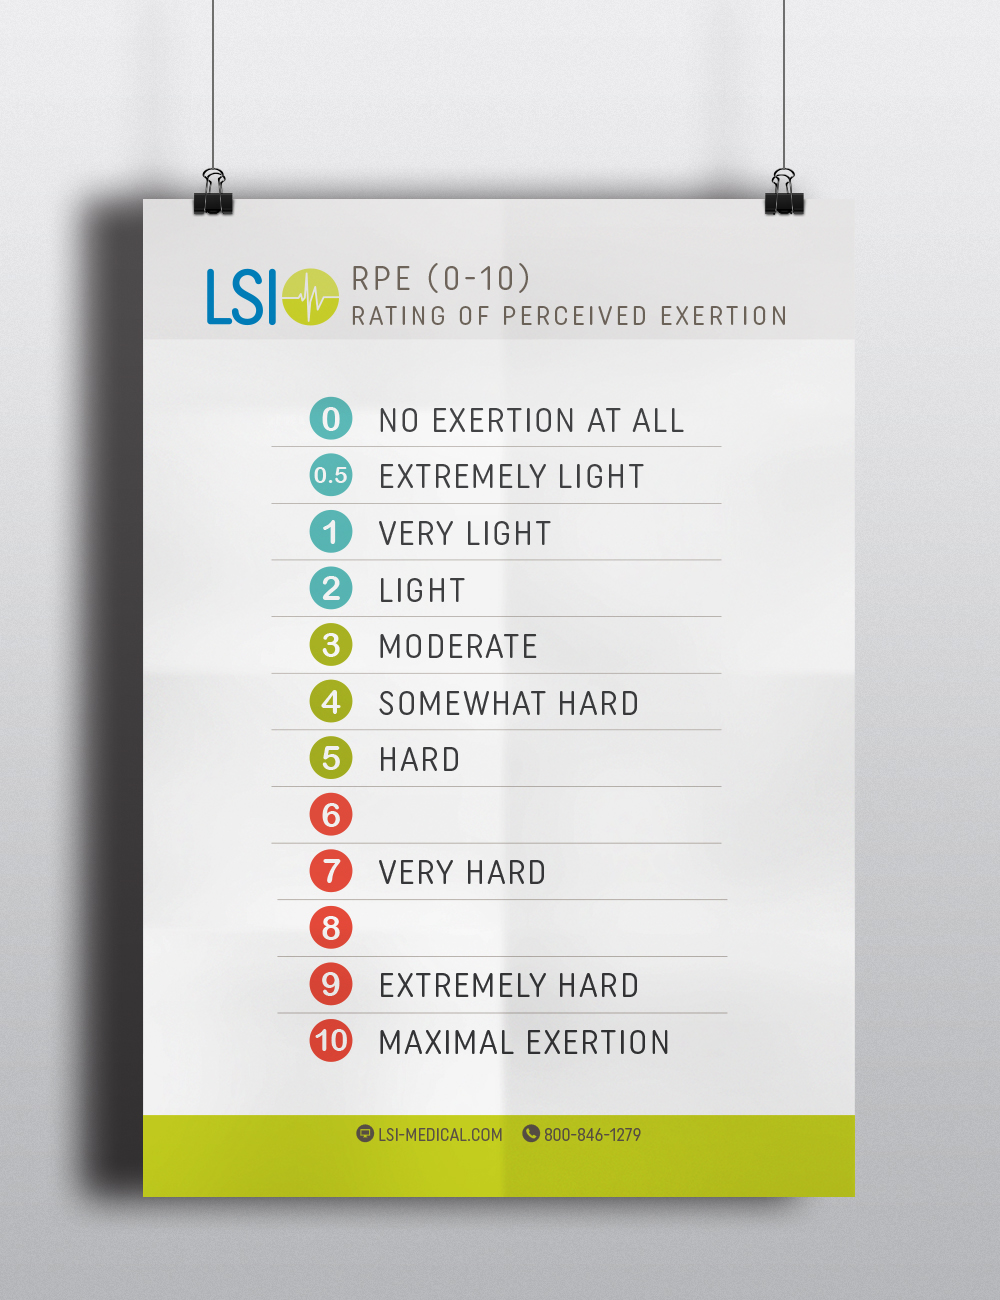 Educational library lsi cardiopulmonary monitoring solutions rpe scale 0 10 asfbconference2016 Image collections